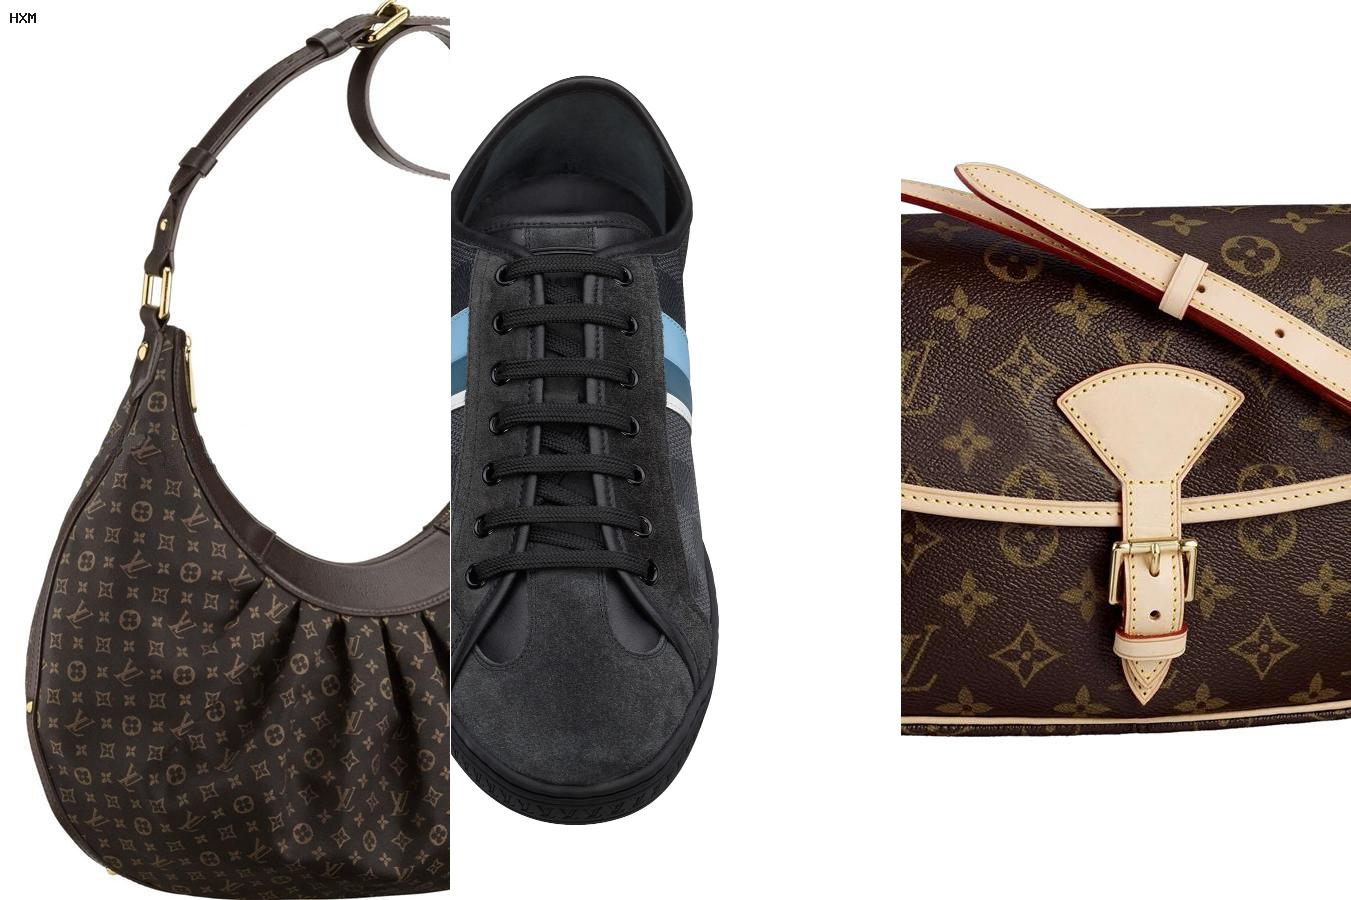 sac louis vuitton shop online